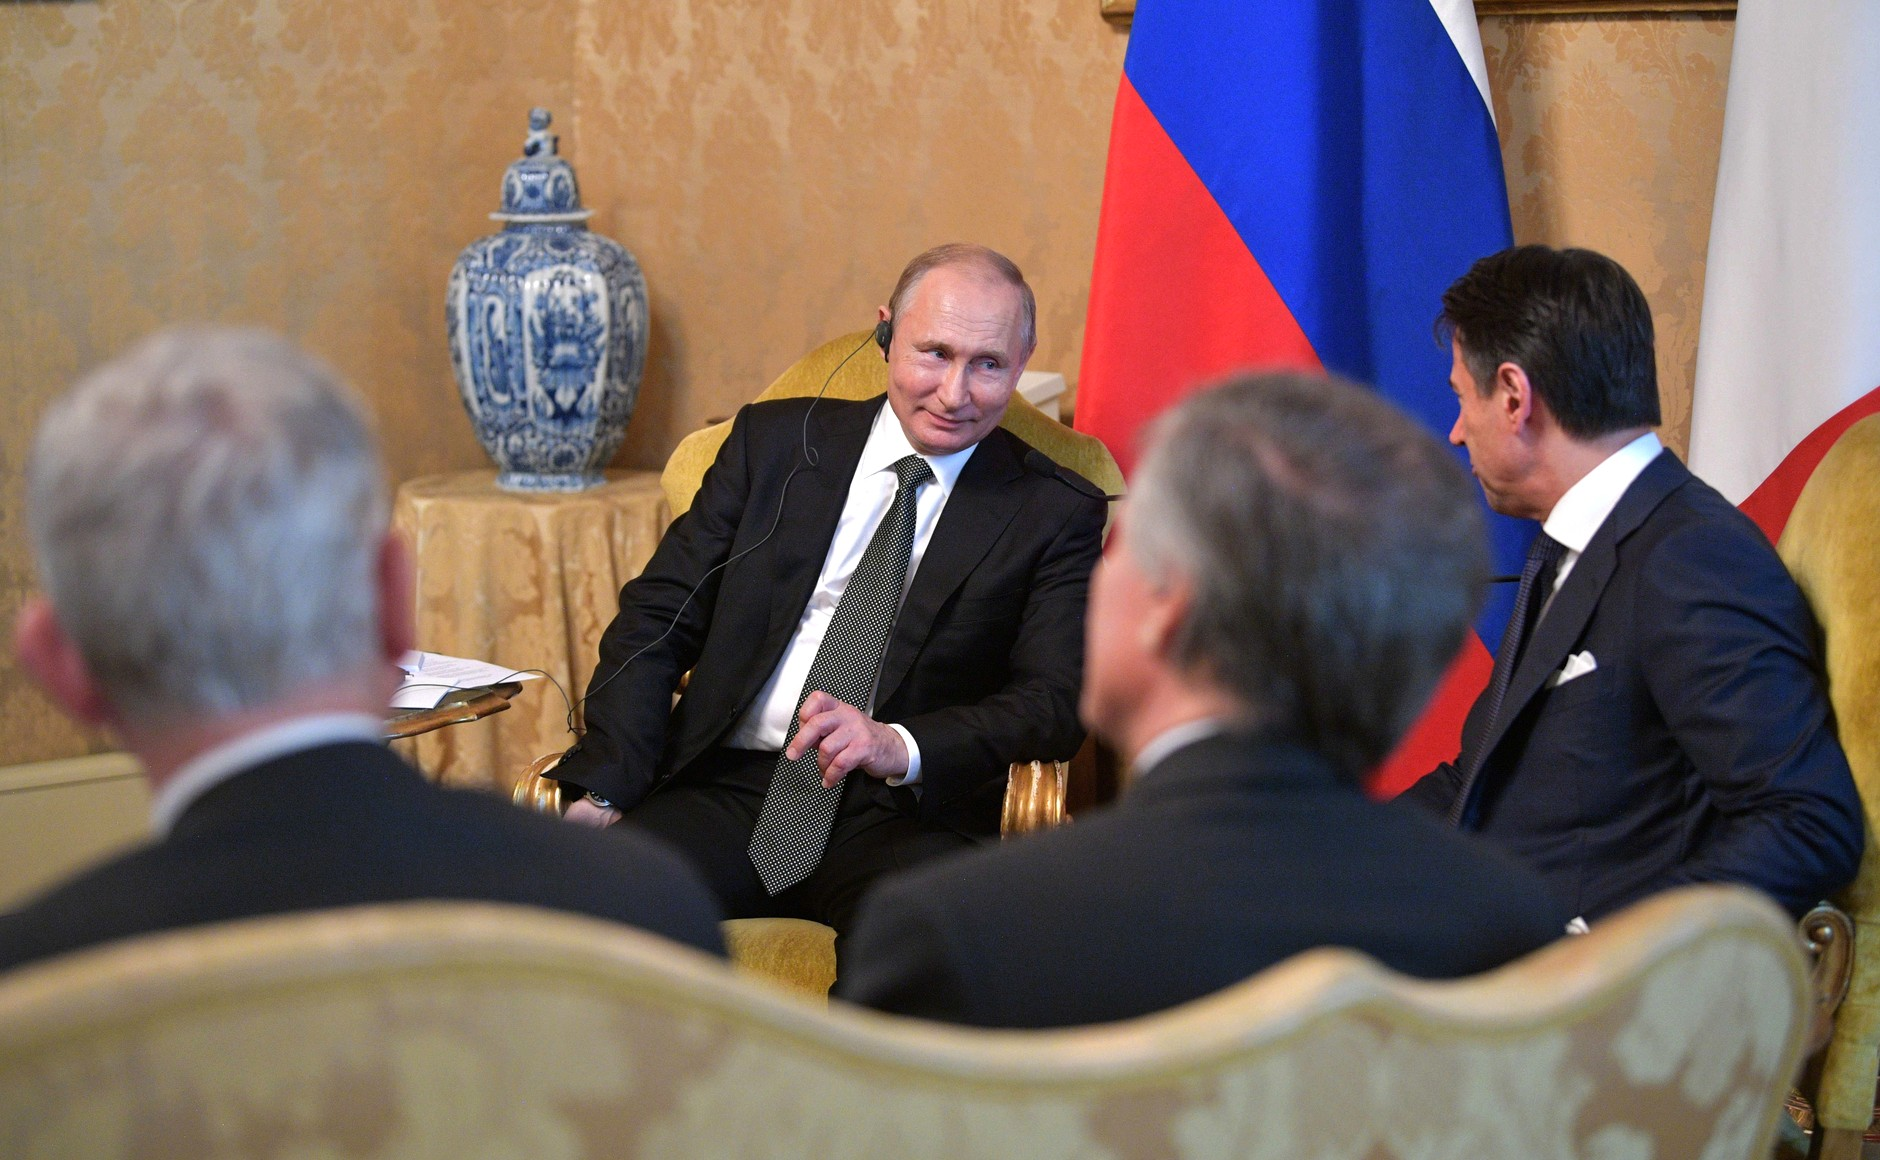 Russia and the European Union: Prospects for a New Relationship